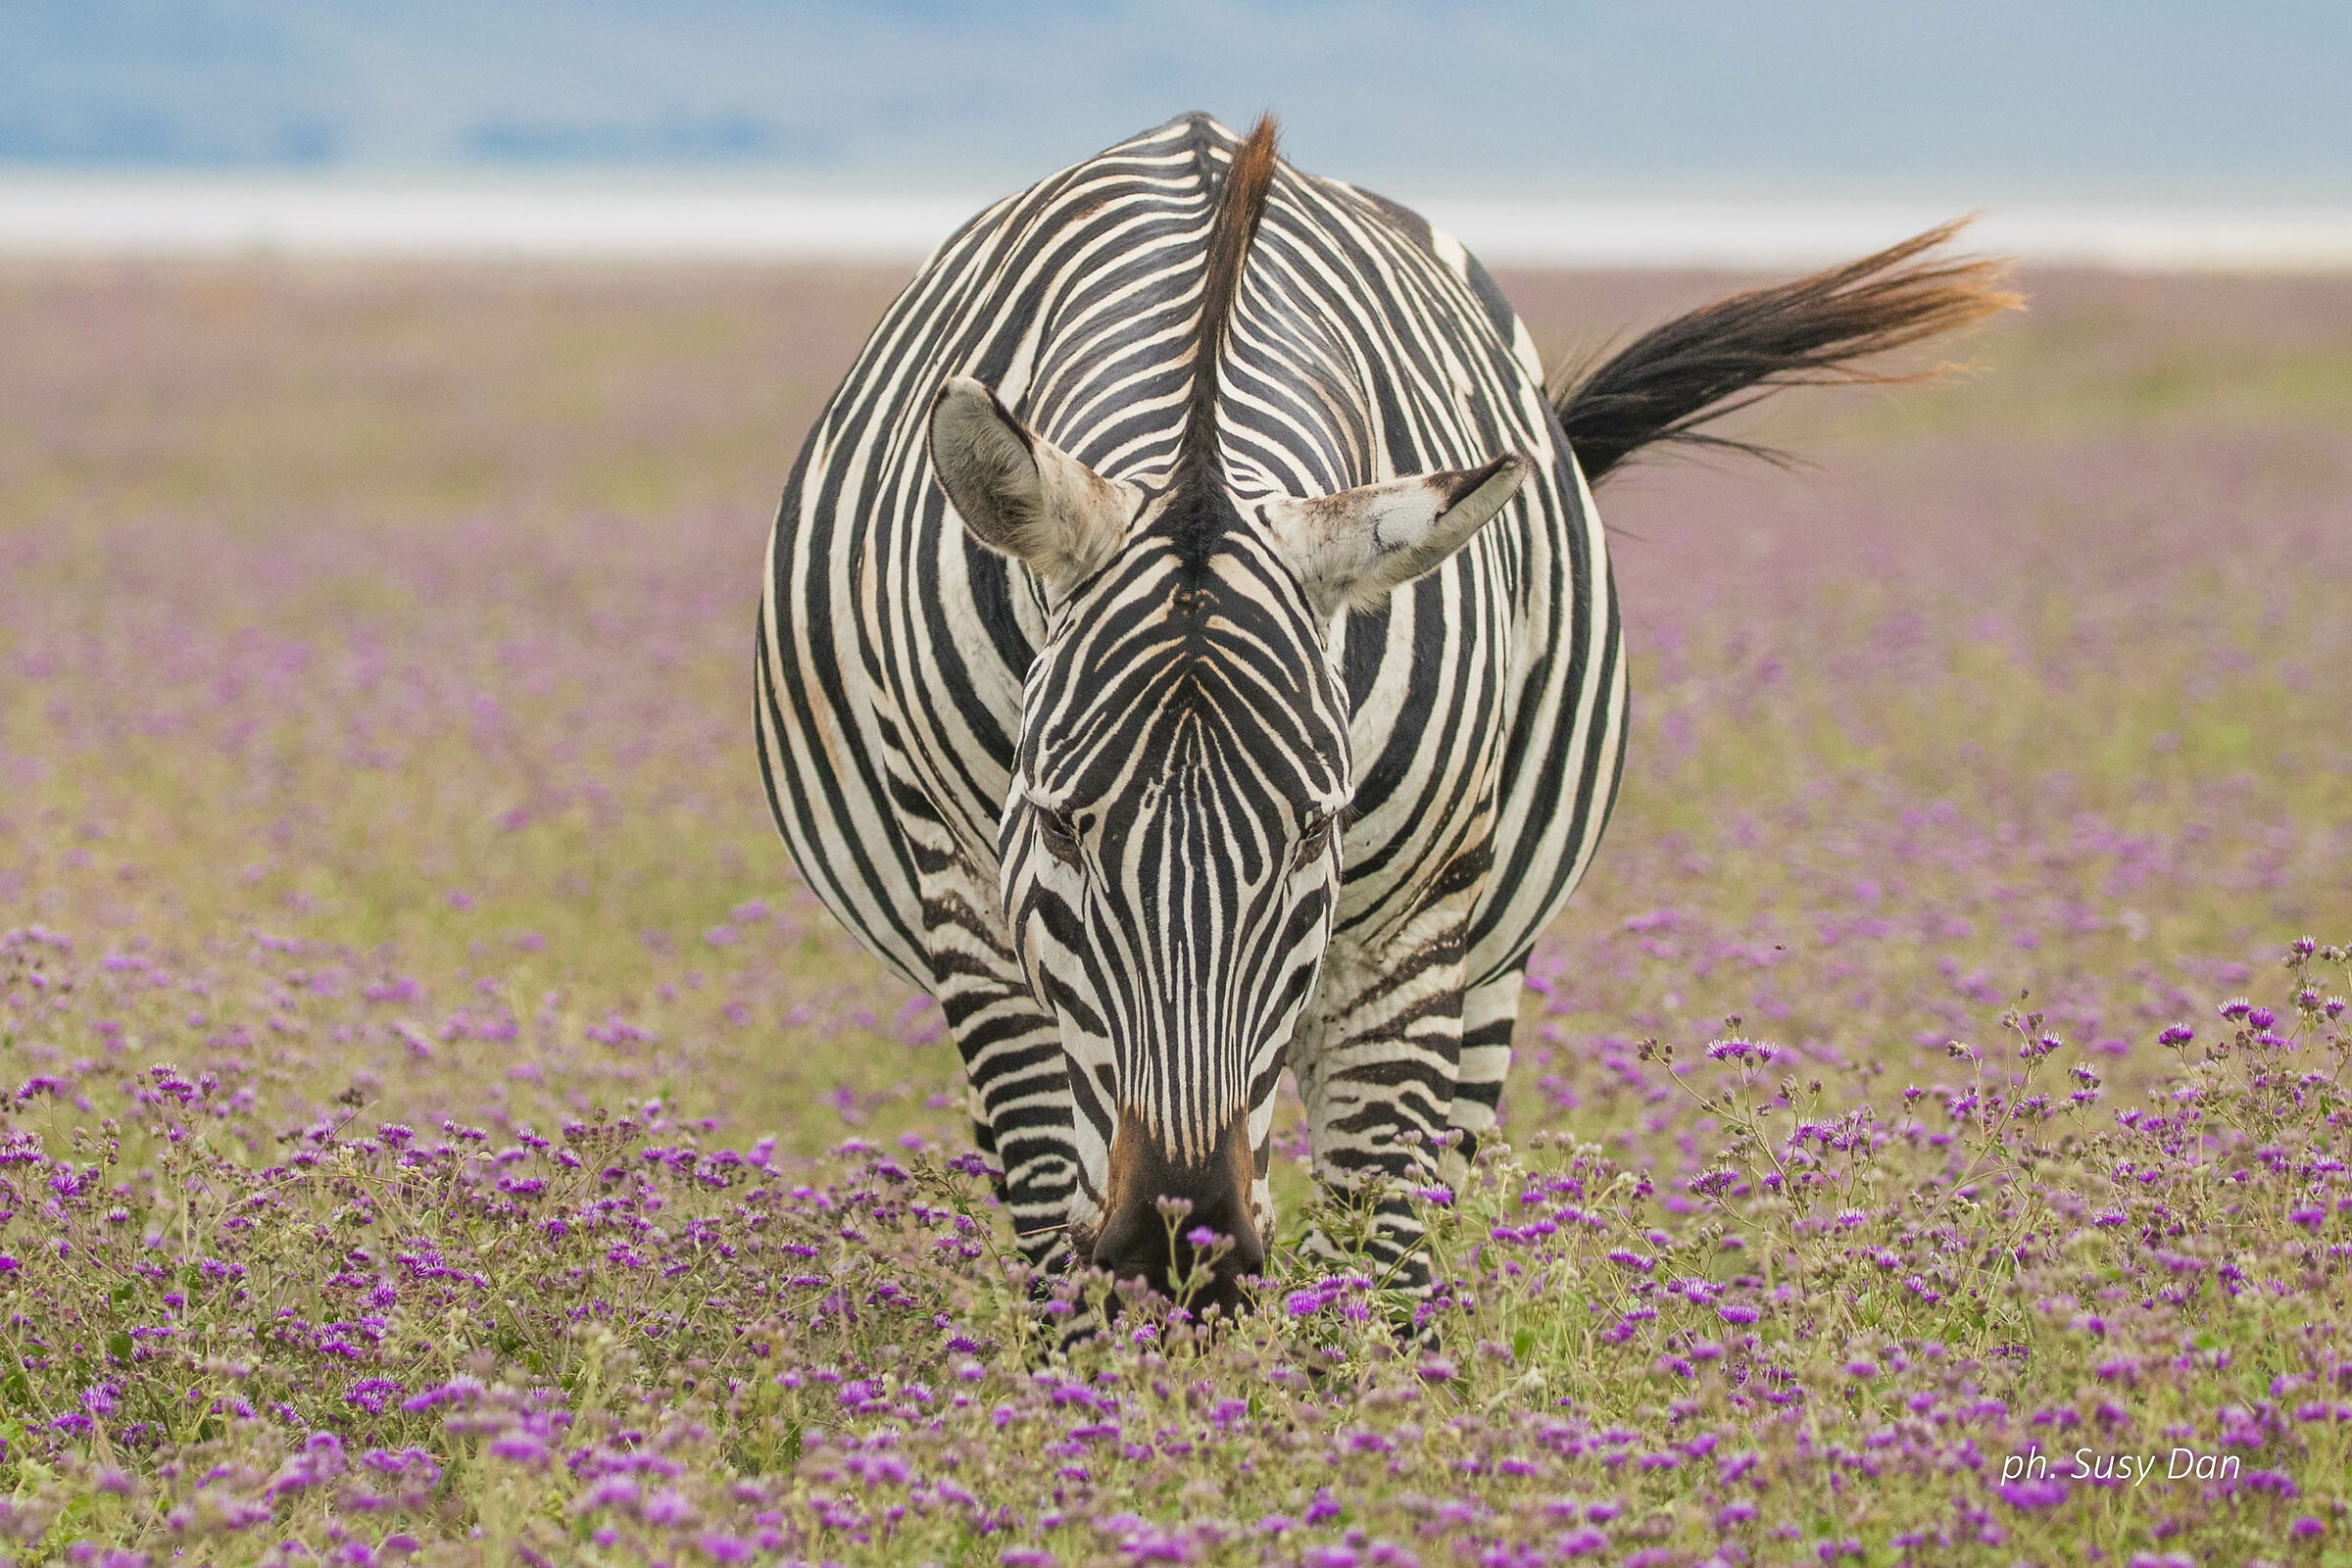 The zebra and the flowers...